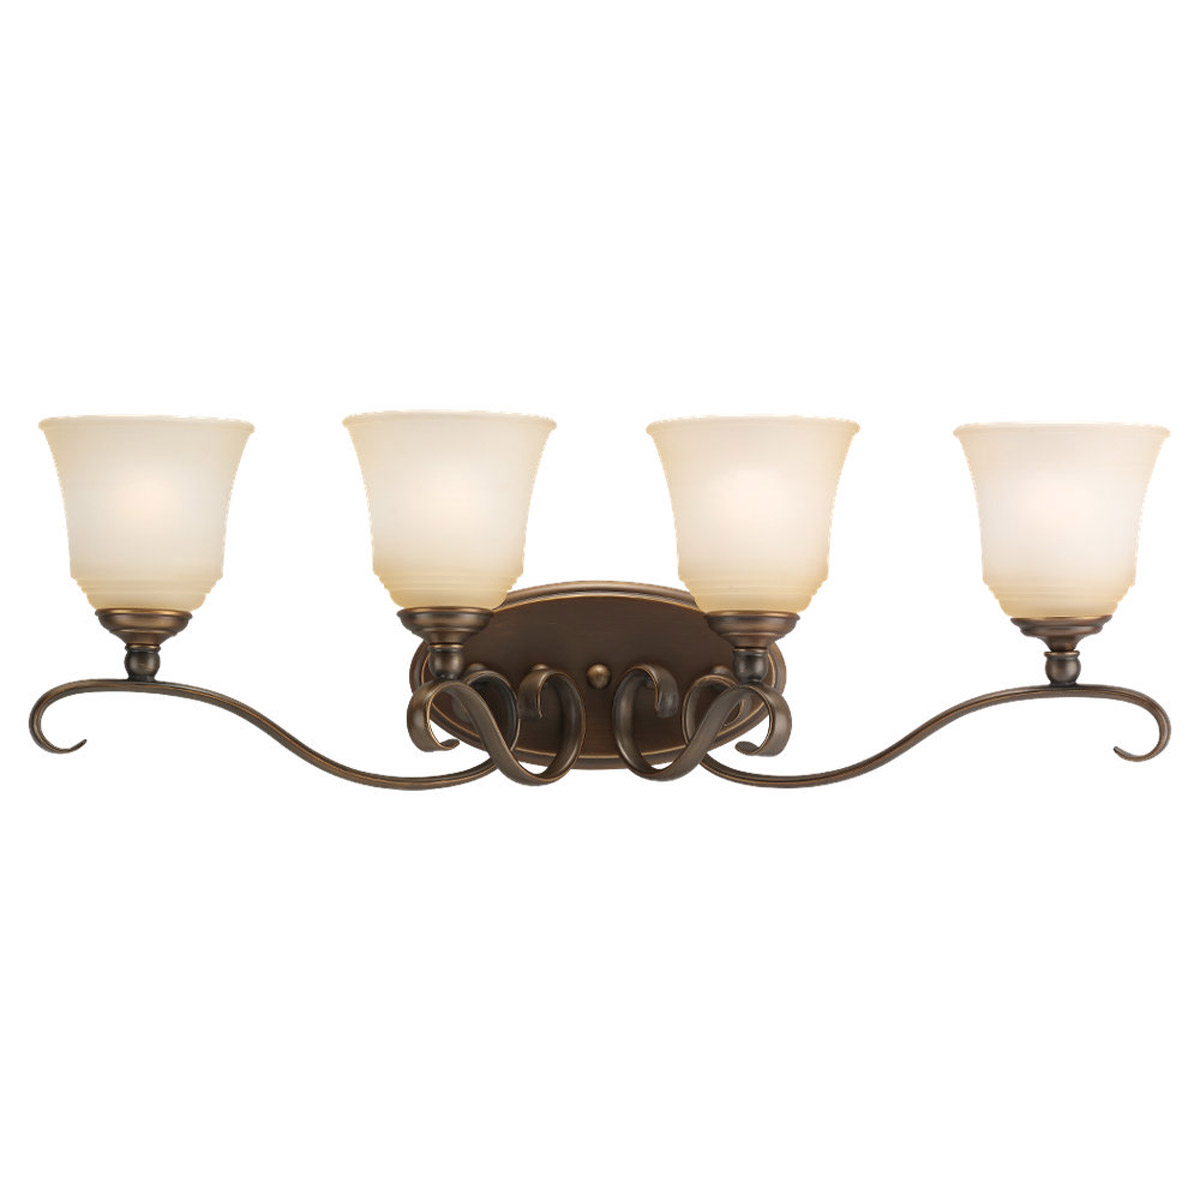 Sea Gull Lighting Parkview 4 Light Bath Vanity in Russet Bronze 49383BLE-829 photo